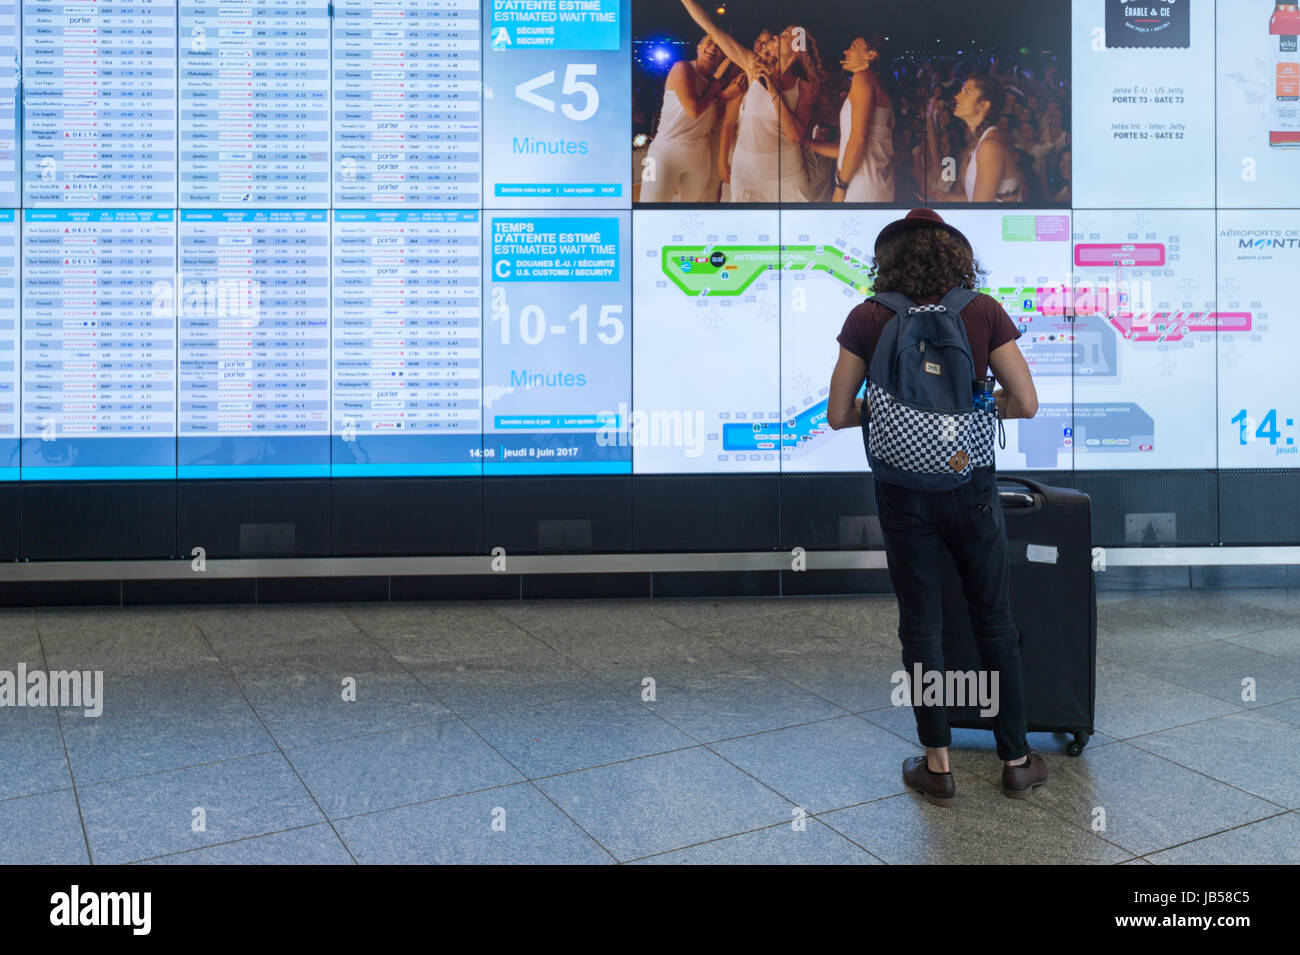 Montreal, CANADA - 8 June 2017: Passenger checking schedules at Pierre Elliott Trudeau International Airport - Stock Image